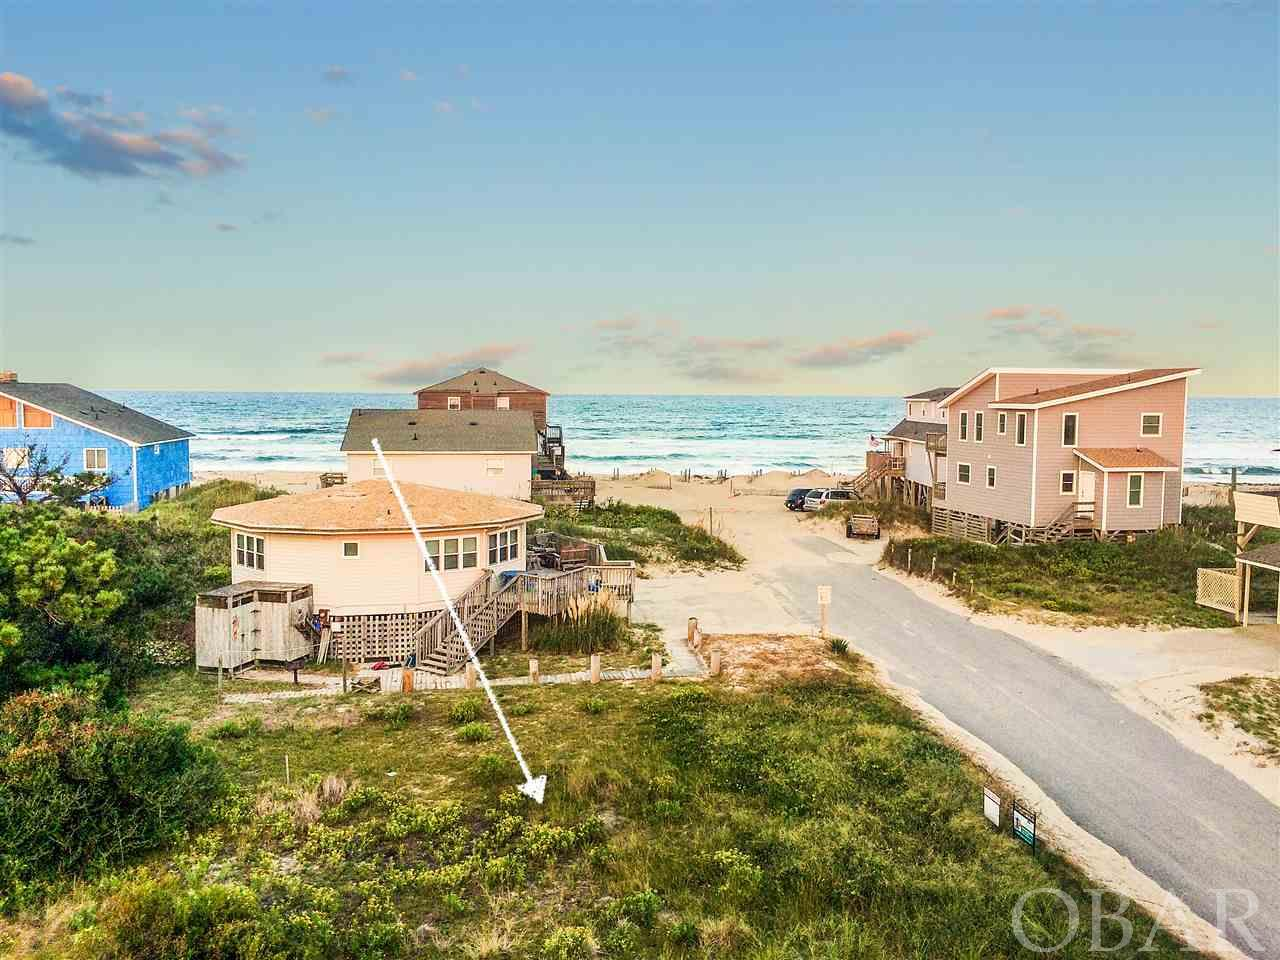 110 E Altoona Street Lot 5-6, Nags Head, NC 27959